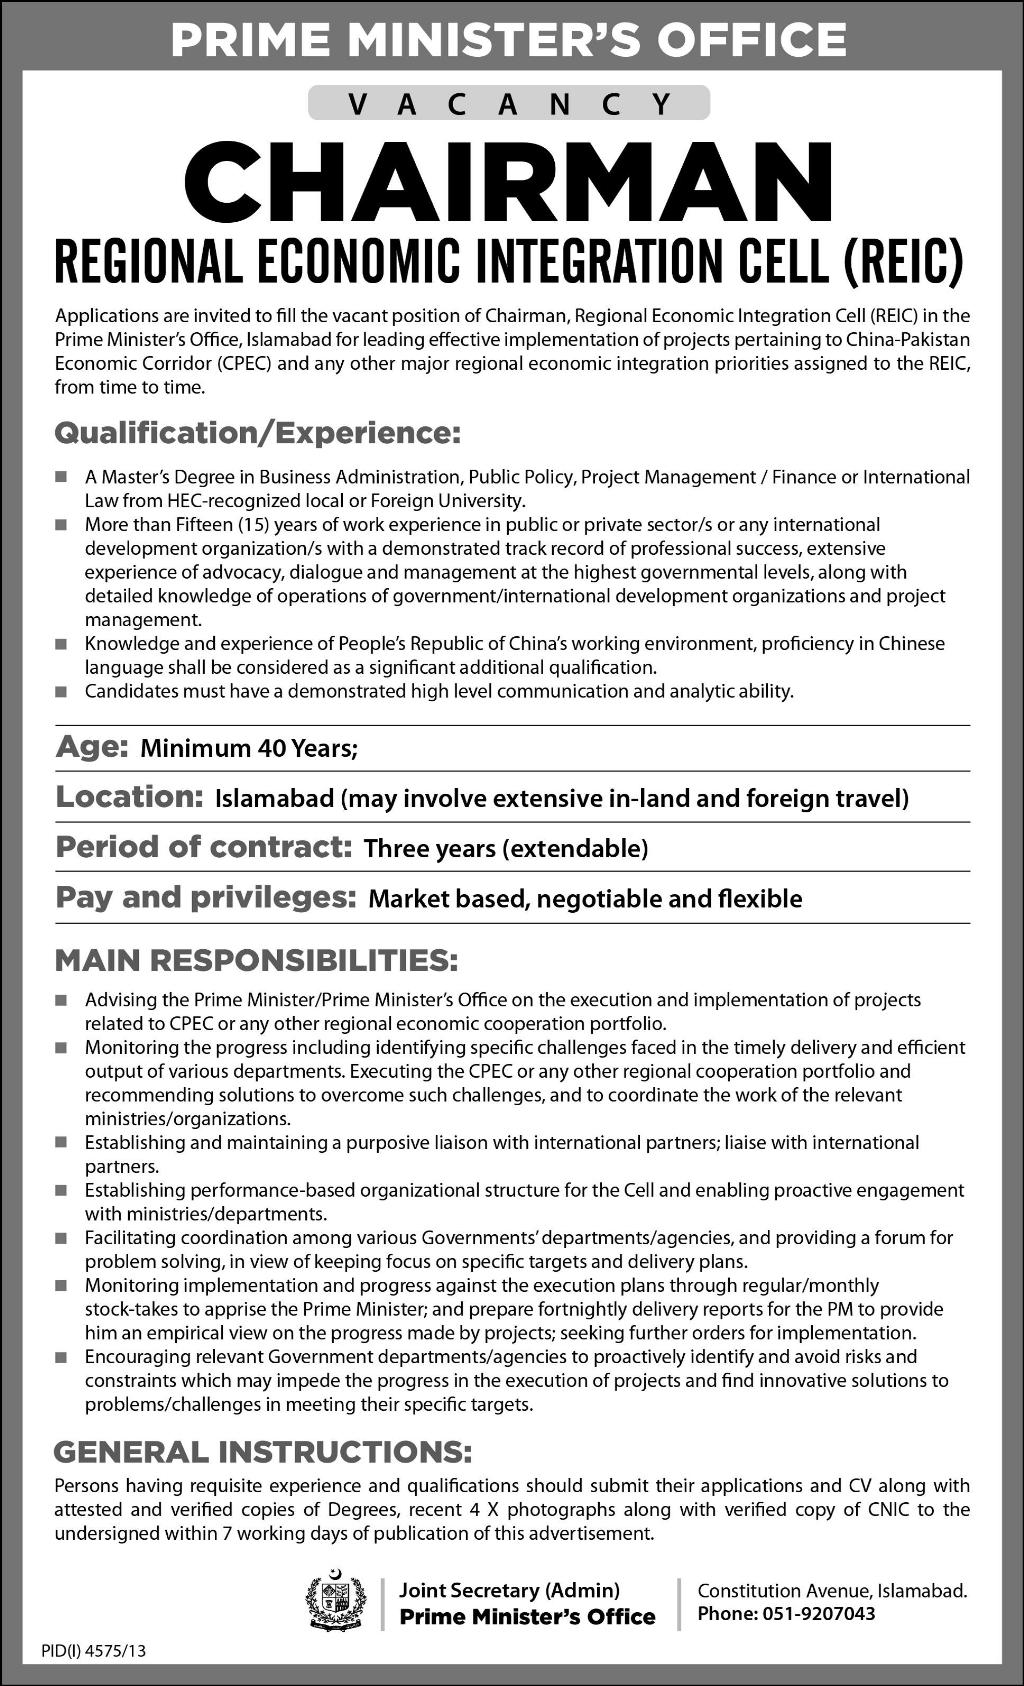 CHAIRMAN Regional Economic Integration Cell (RIEC) Required ...